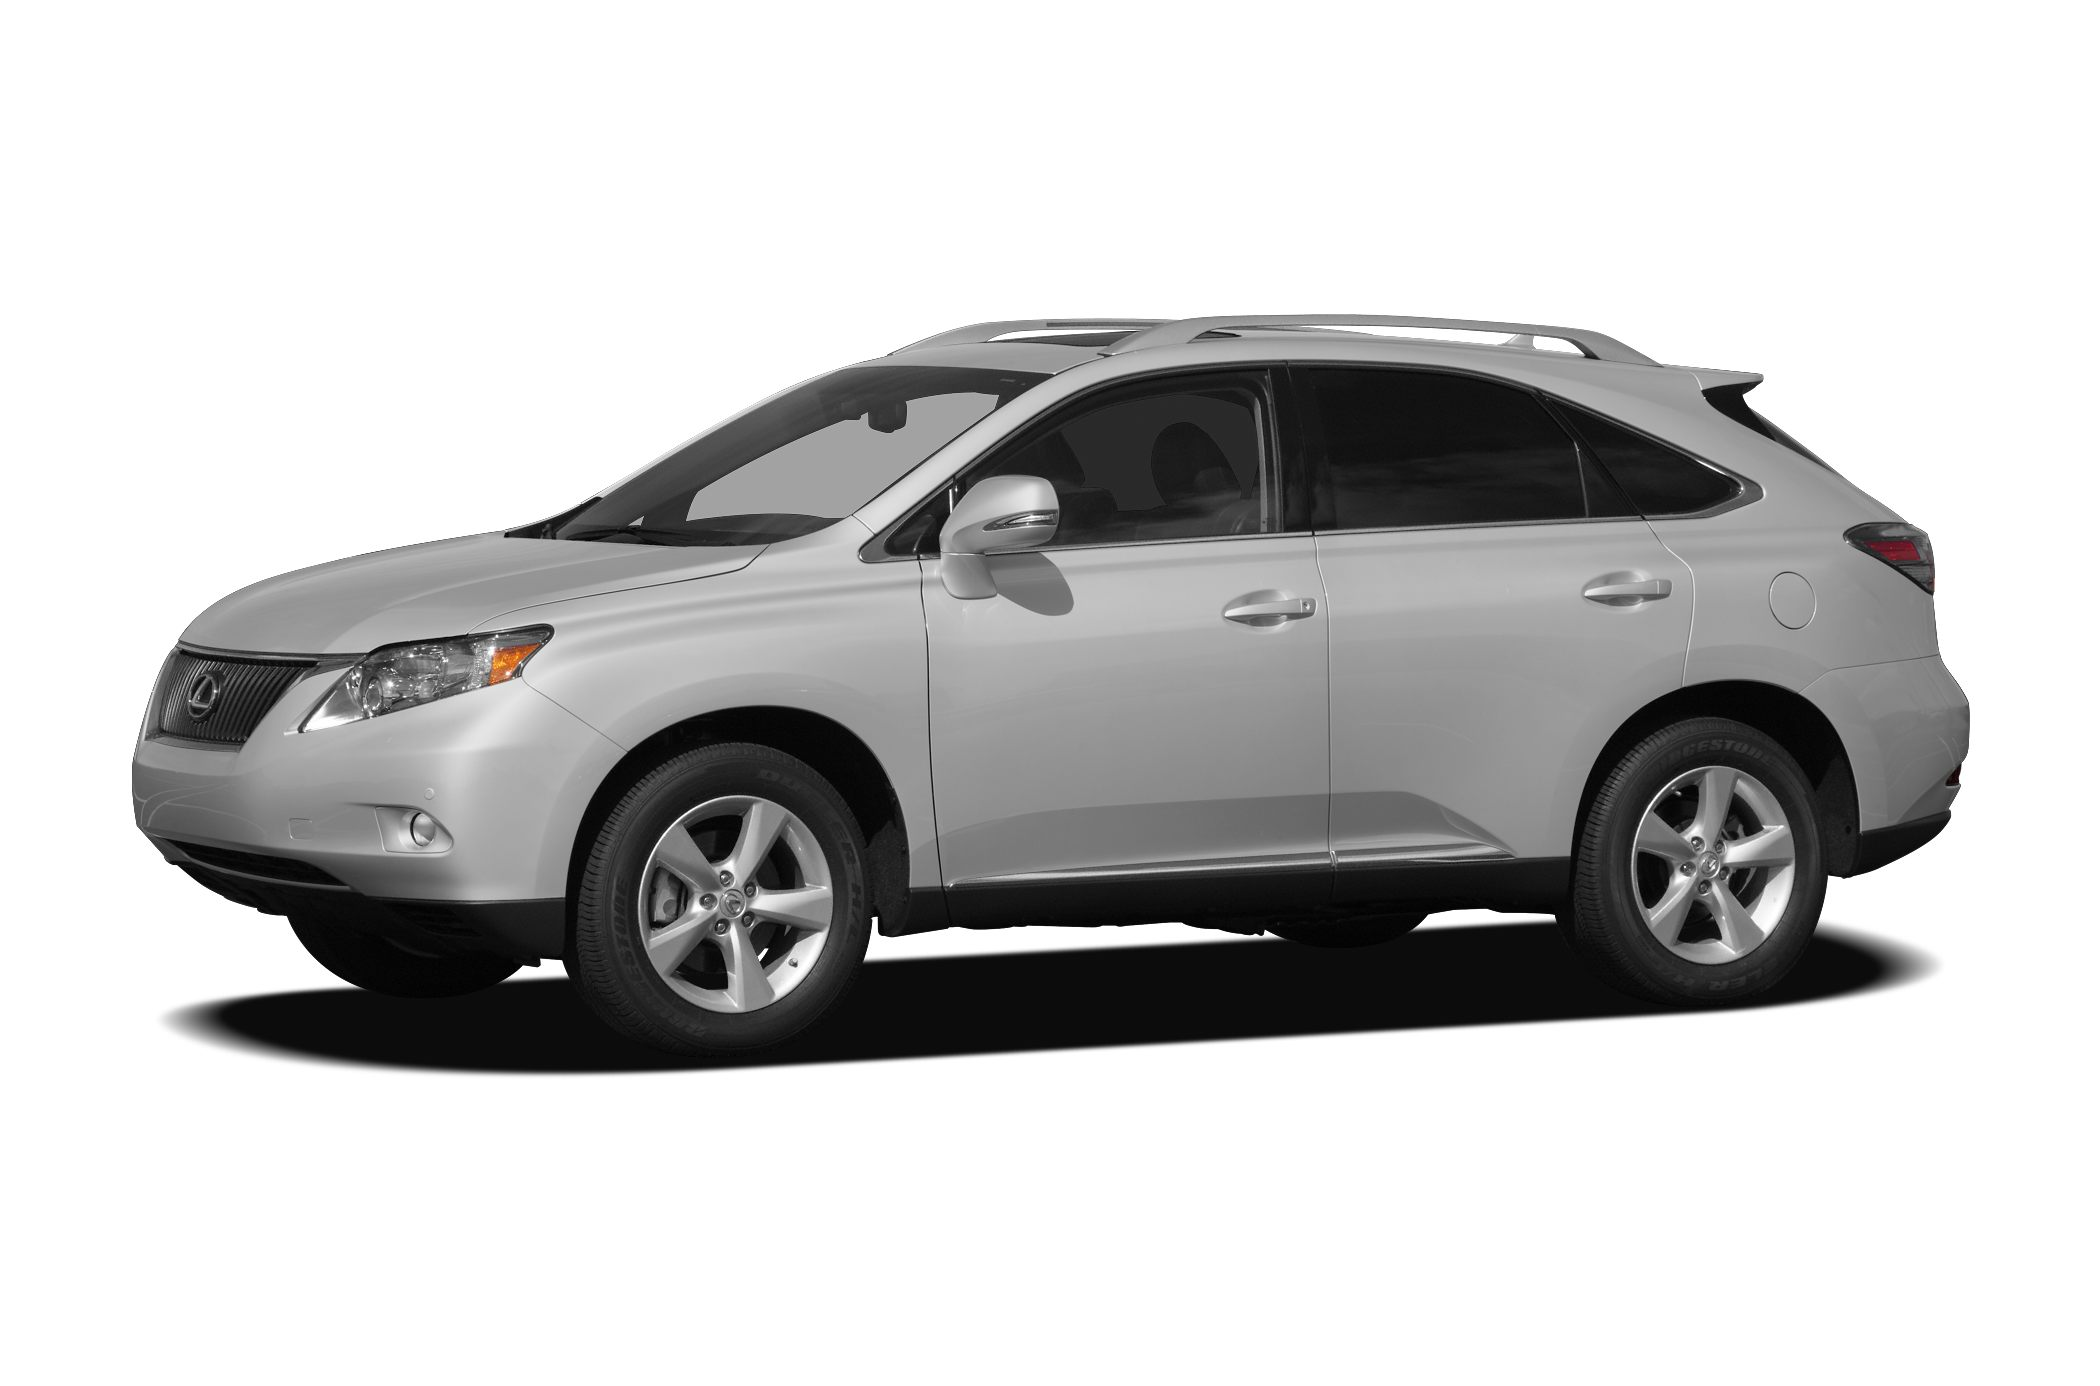 2010 Lexus RX 350 SUV for sale in Fort Worth for $24,488 with 86,621 miles.